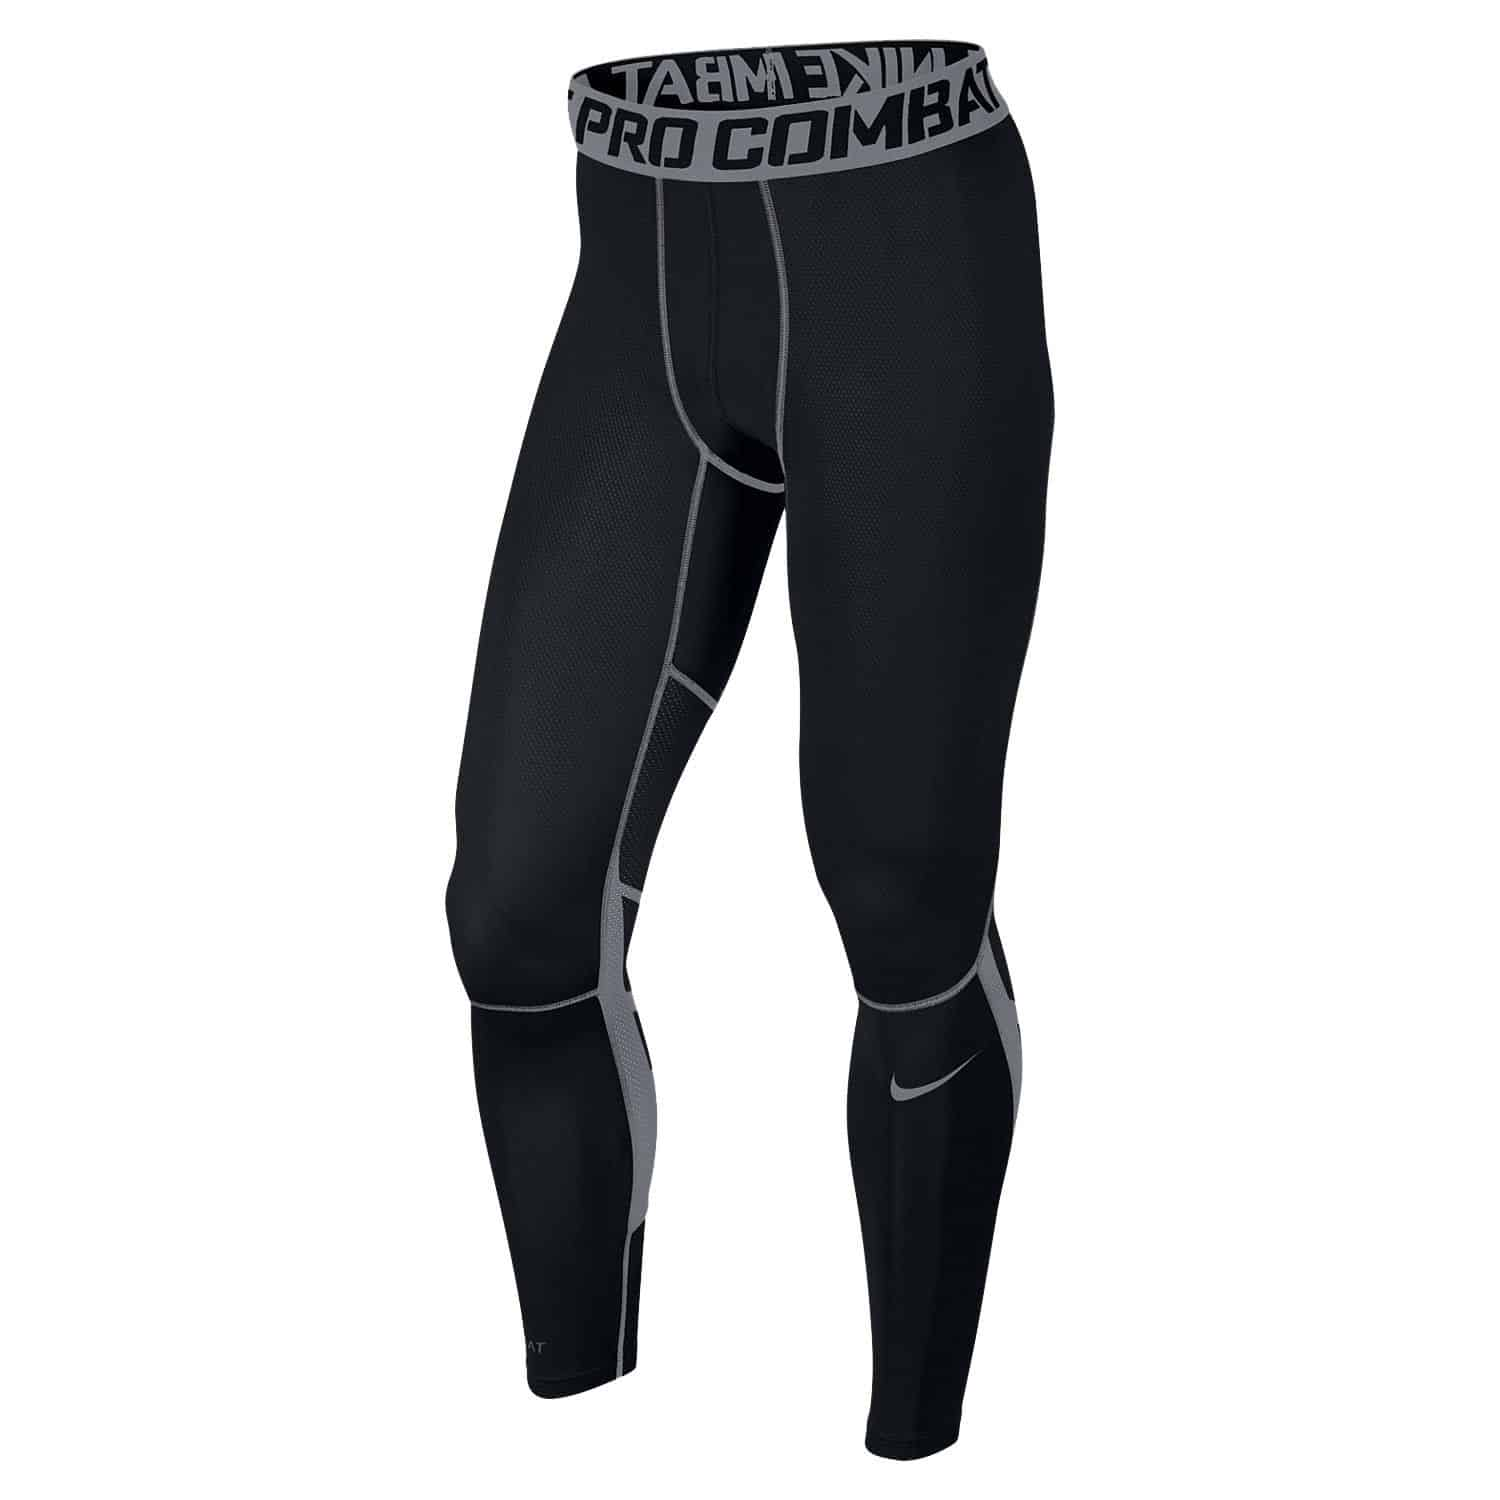 Nike Pro Combat Hypercool Compression Tights review